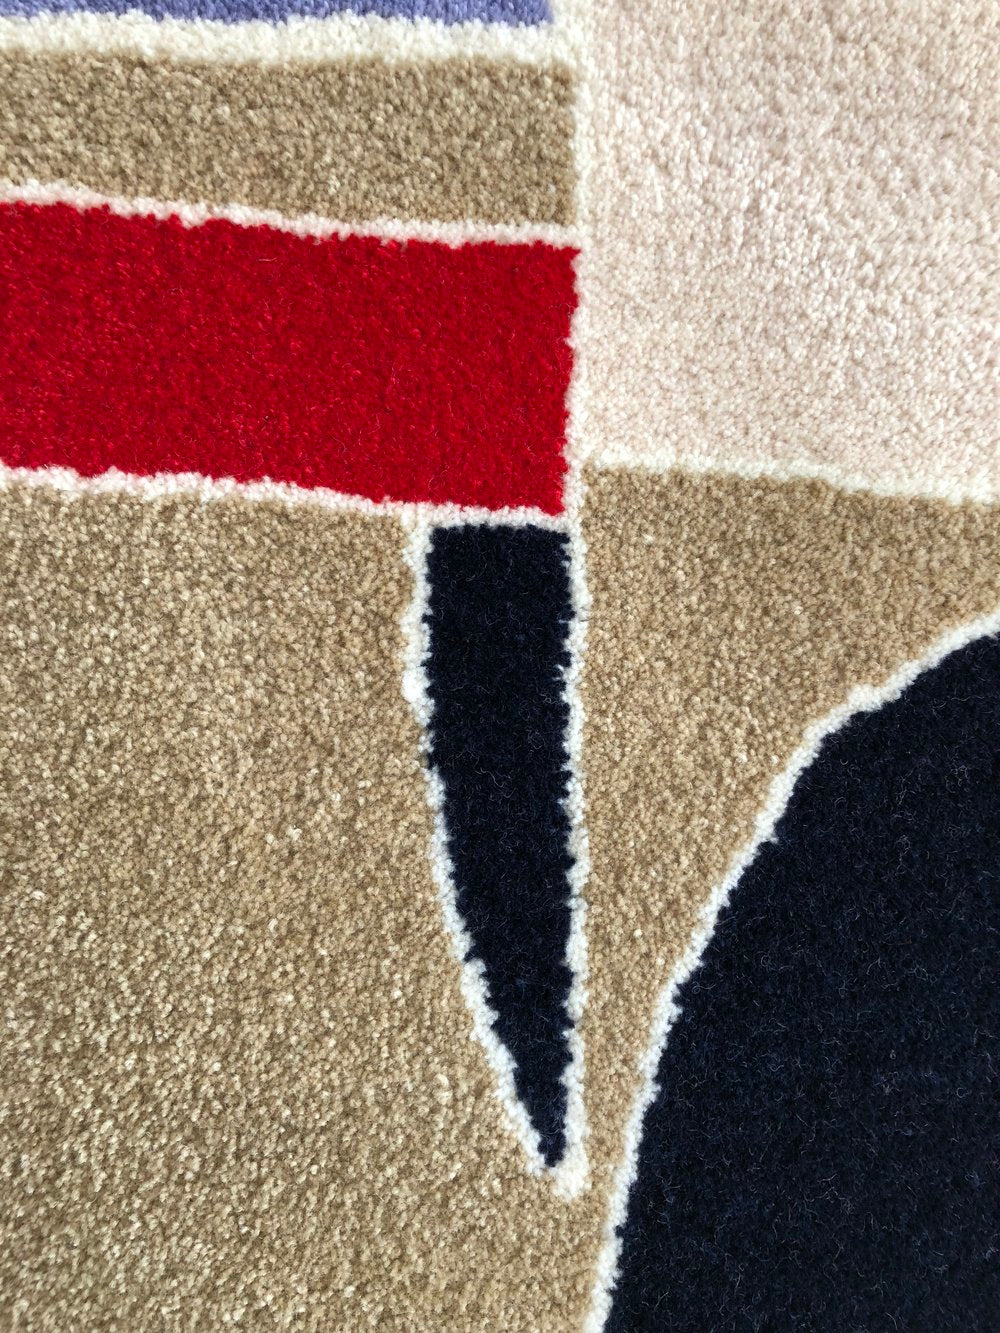 KJP x Home Union Moroccan Wool Limited Run Rug Design # 1